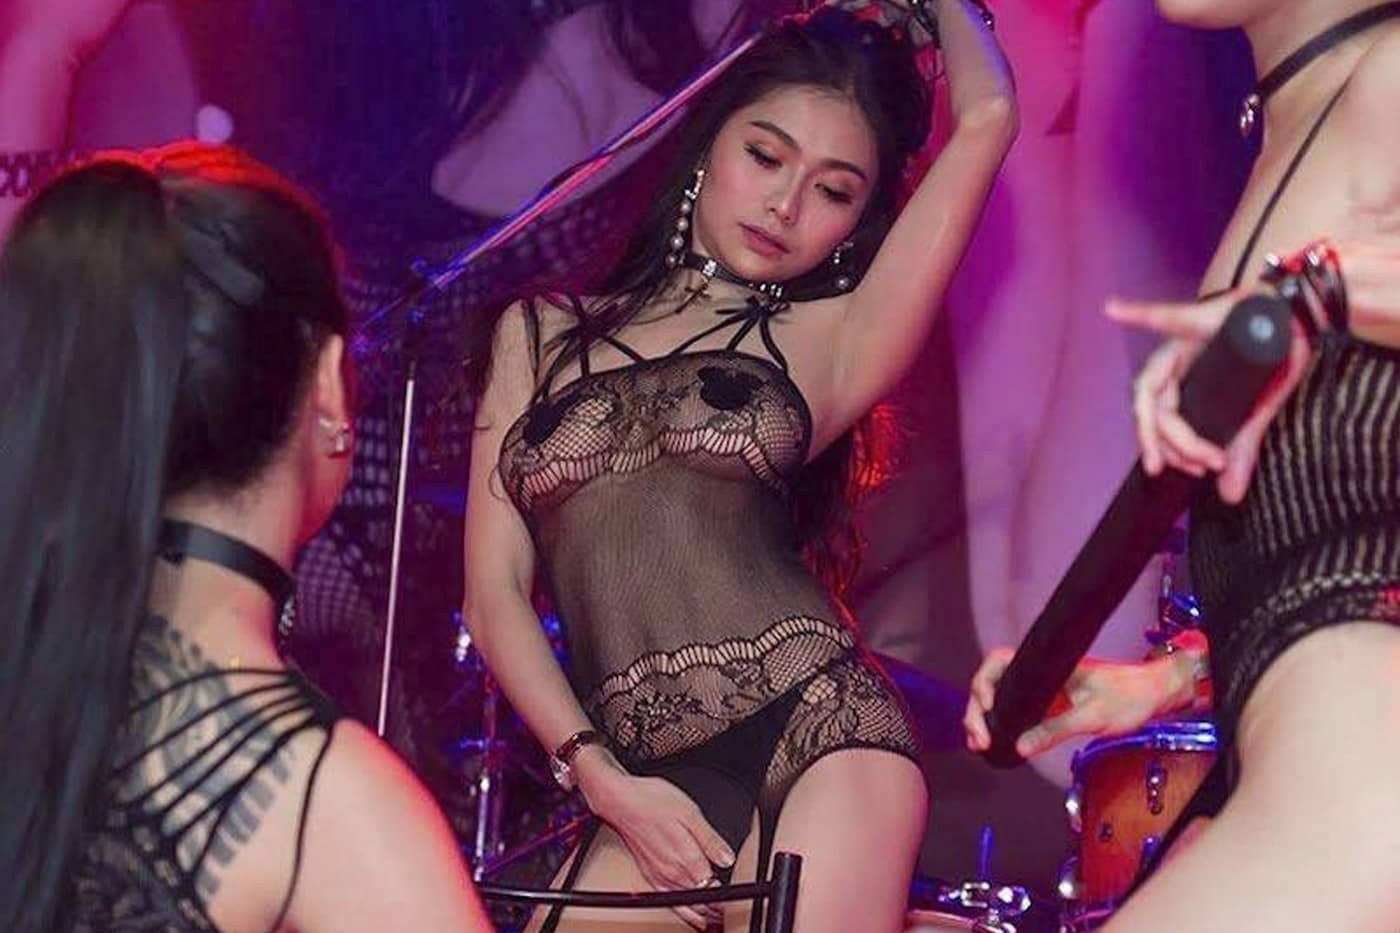 Sexy Show on Stage at PImp Bangkok